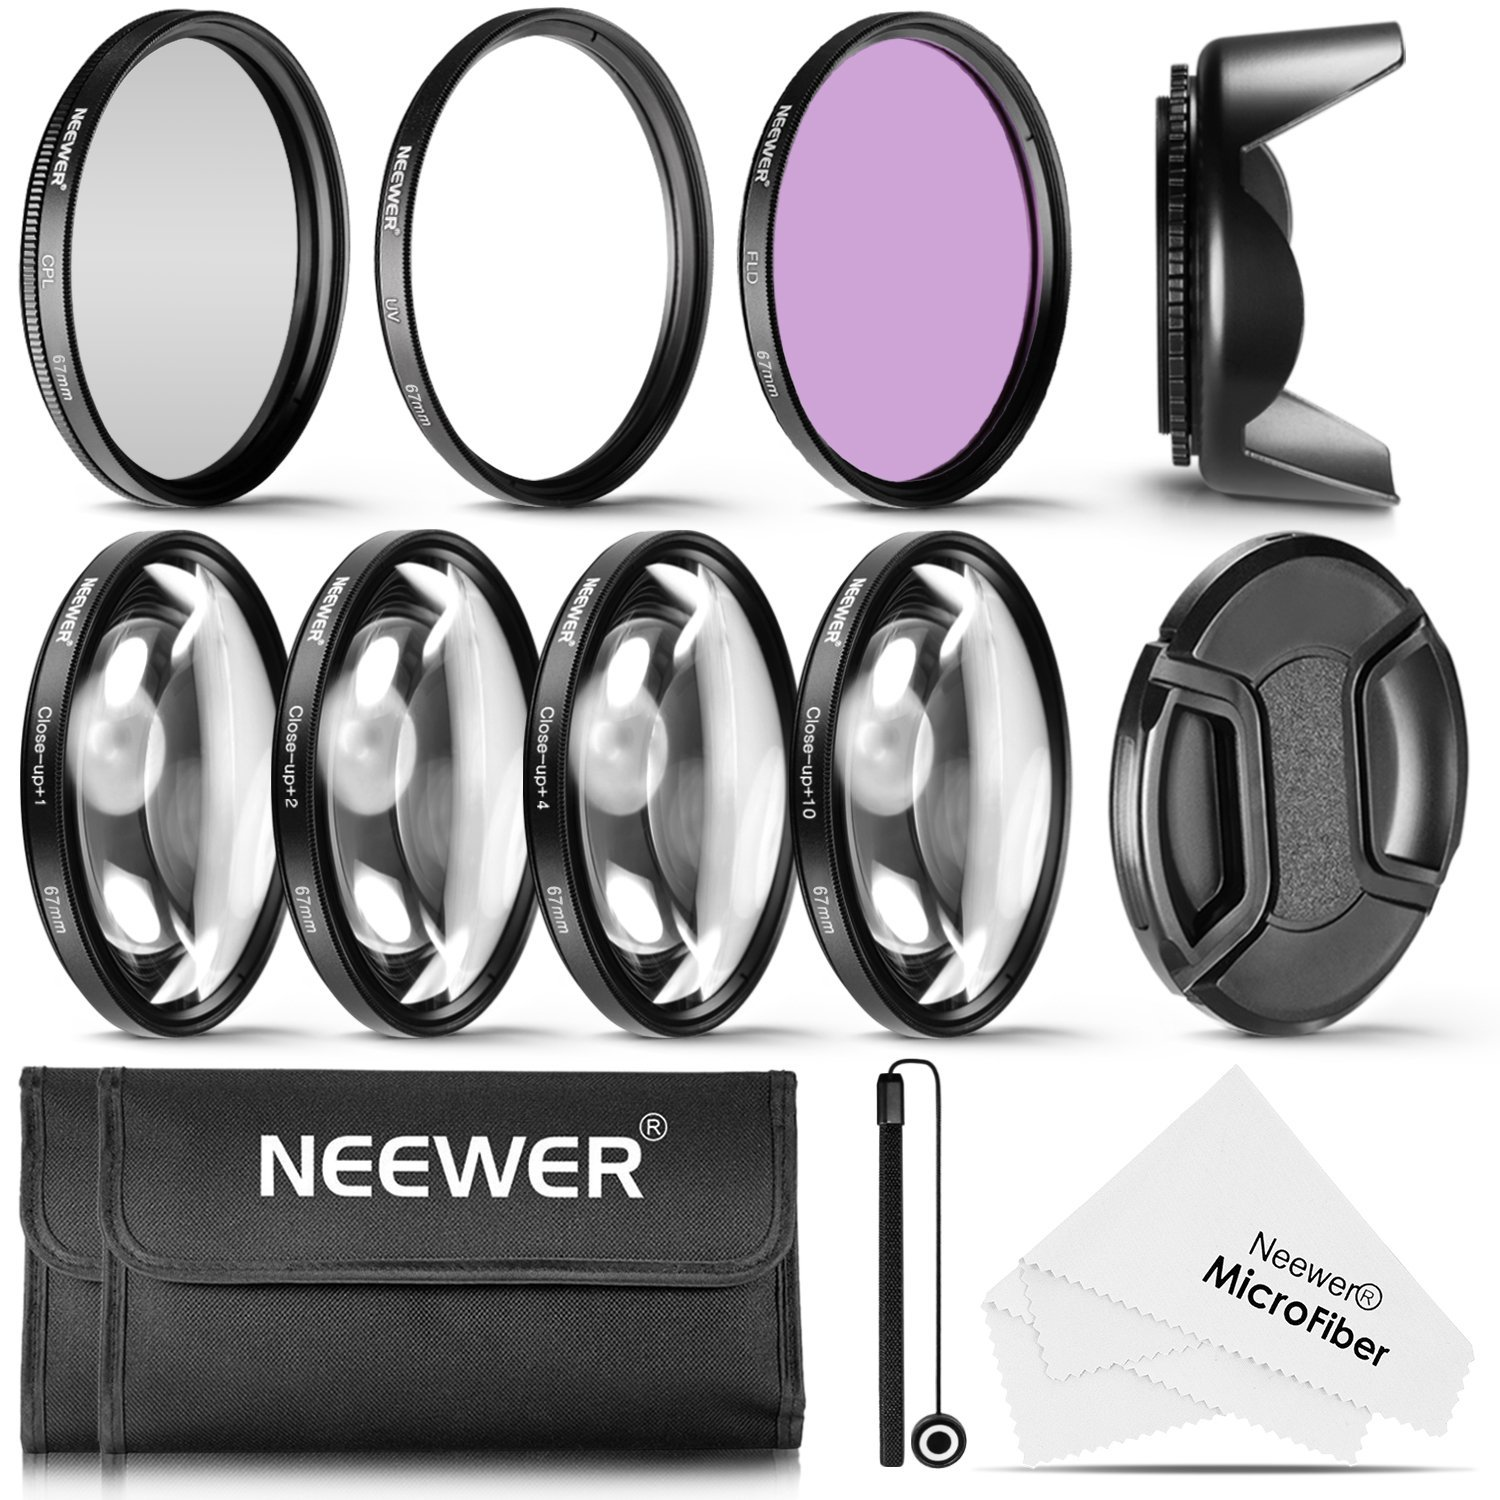 Neewer 67MM Professional UV CPL FLD Lens Filter and Close-up (+1, +2, +4, +10) Accessory Kit for Lenses with a 67mm Filter Size